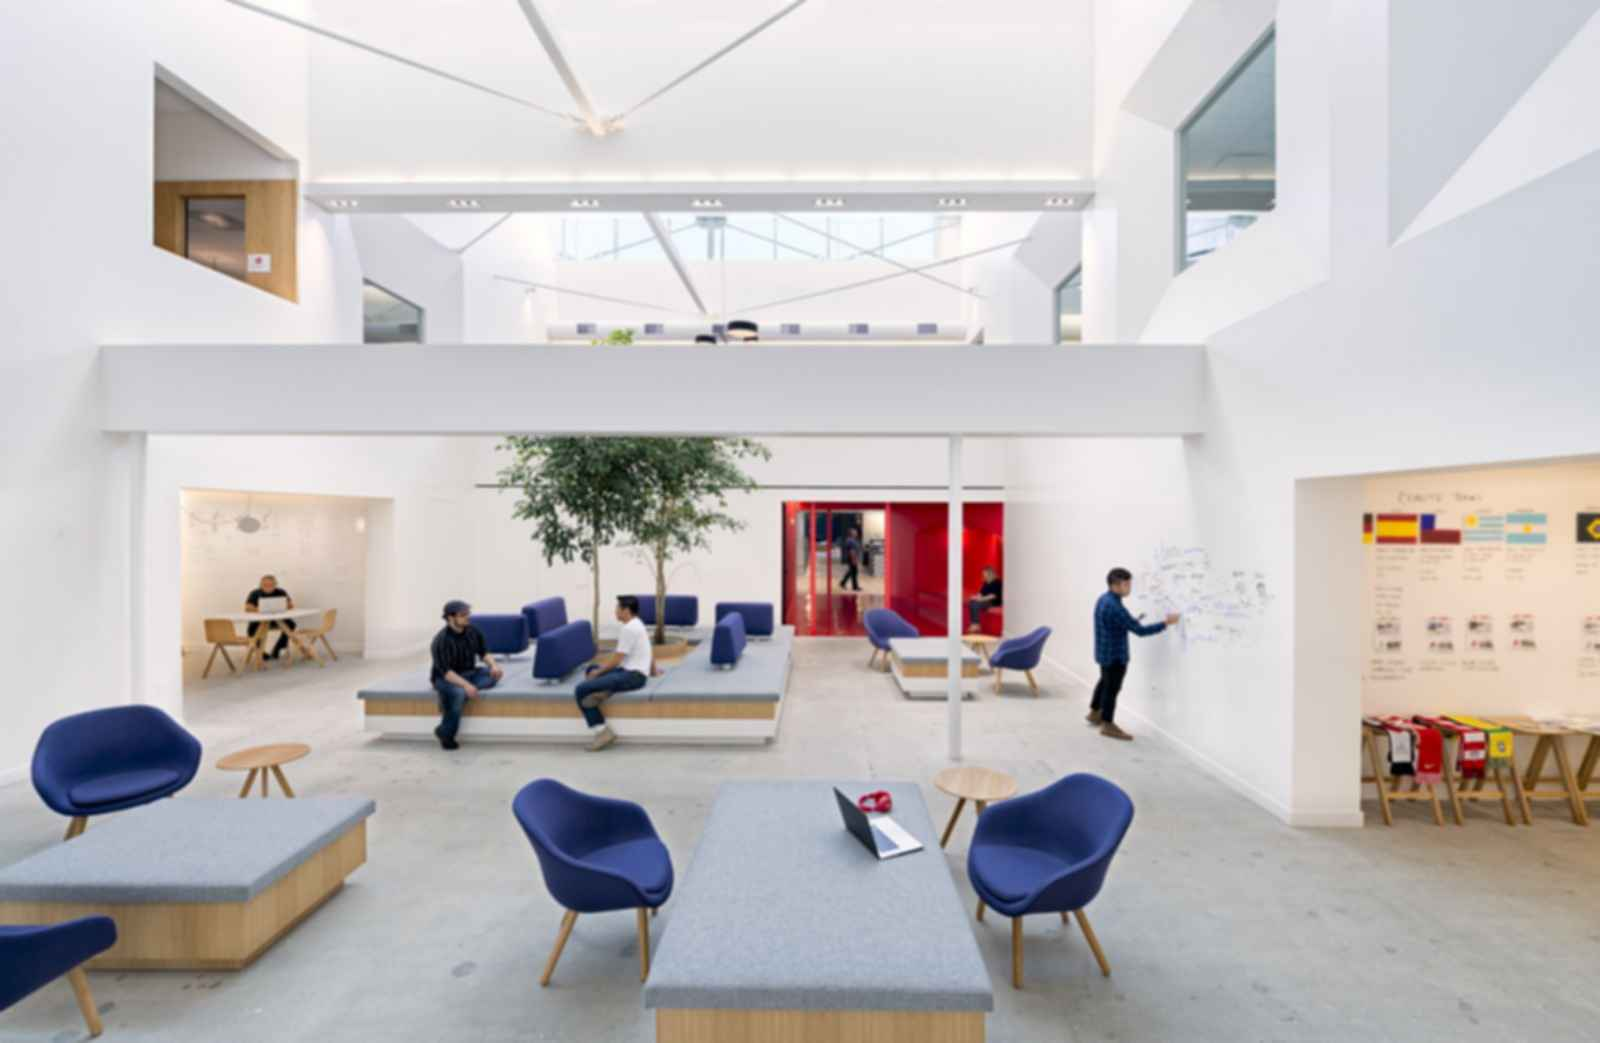 Beats By Dre Headquarters - Interior